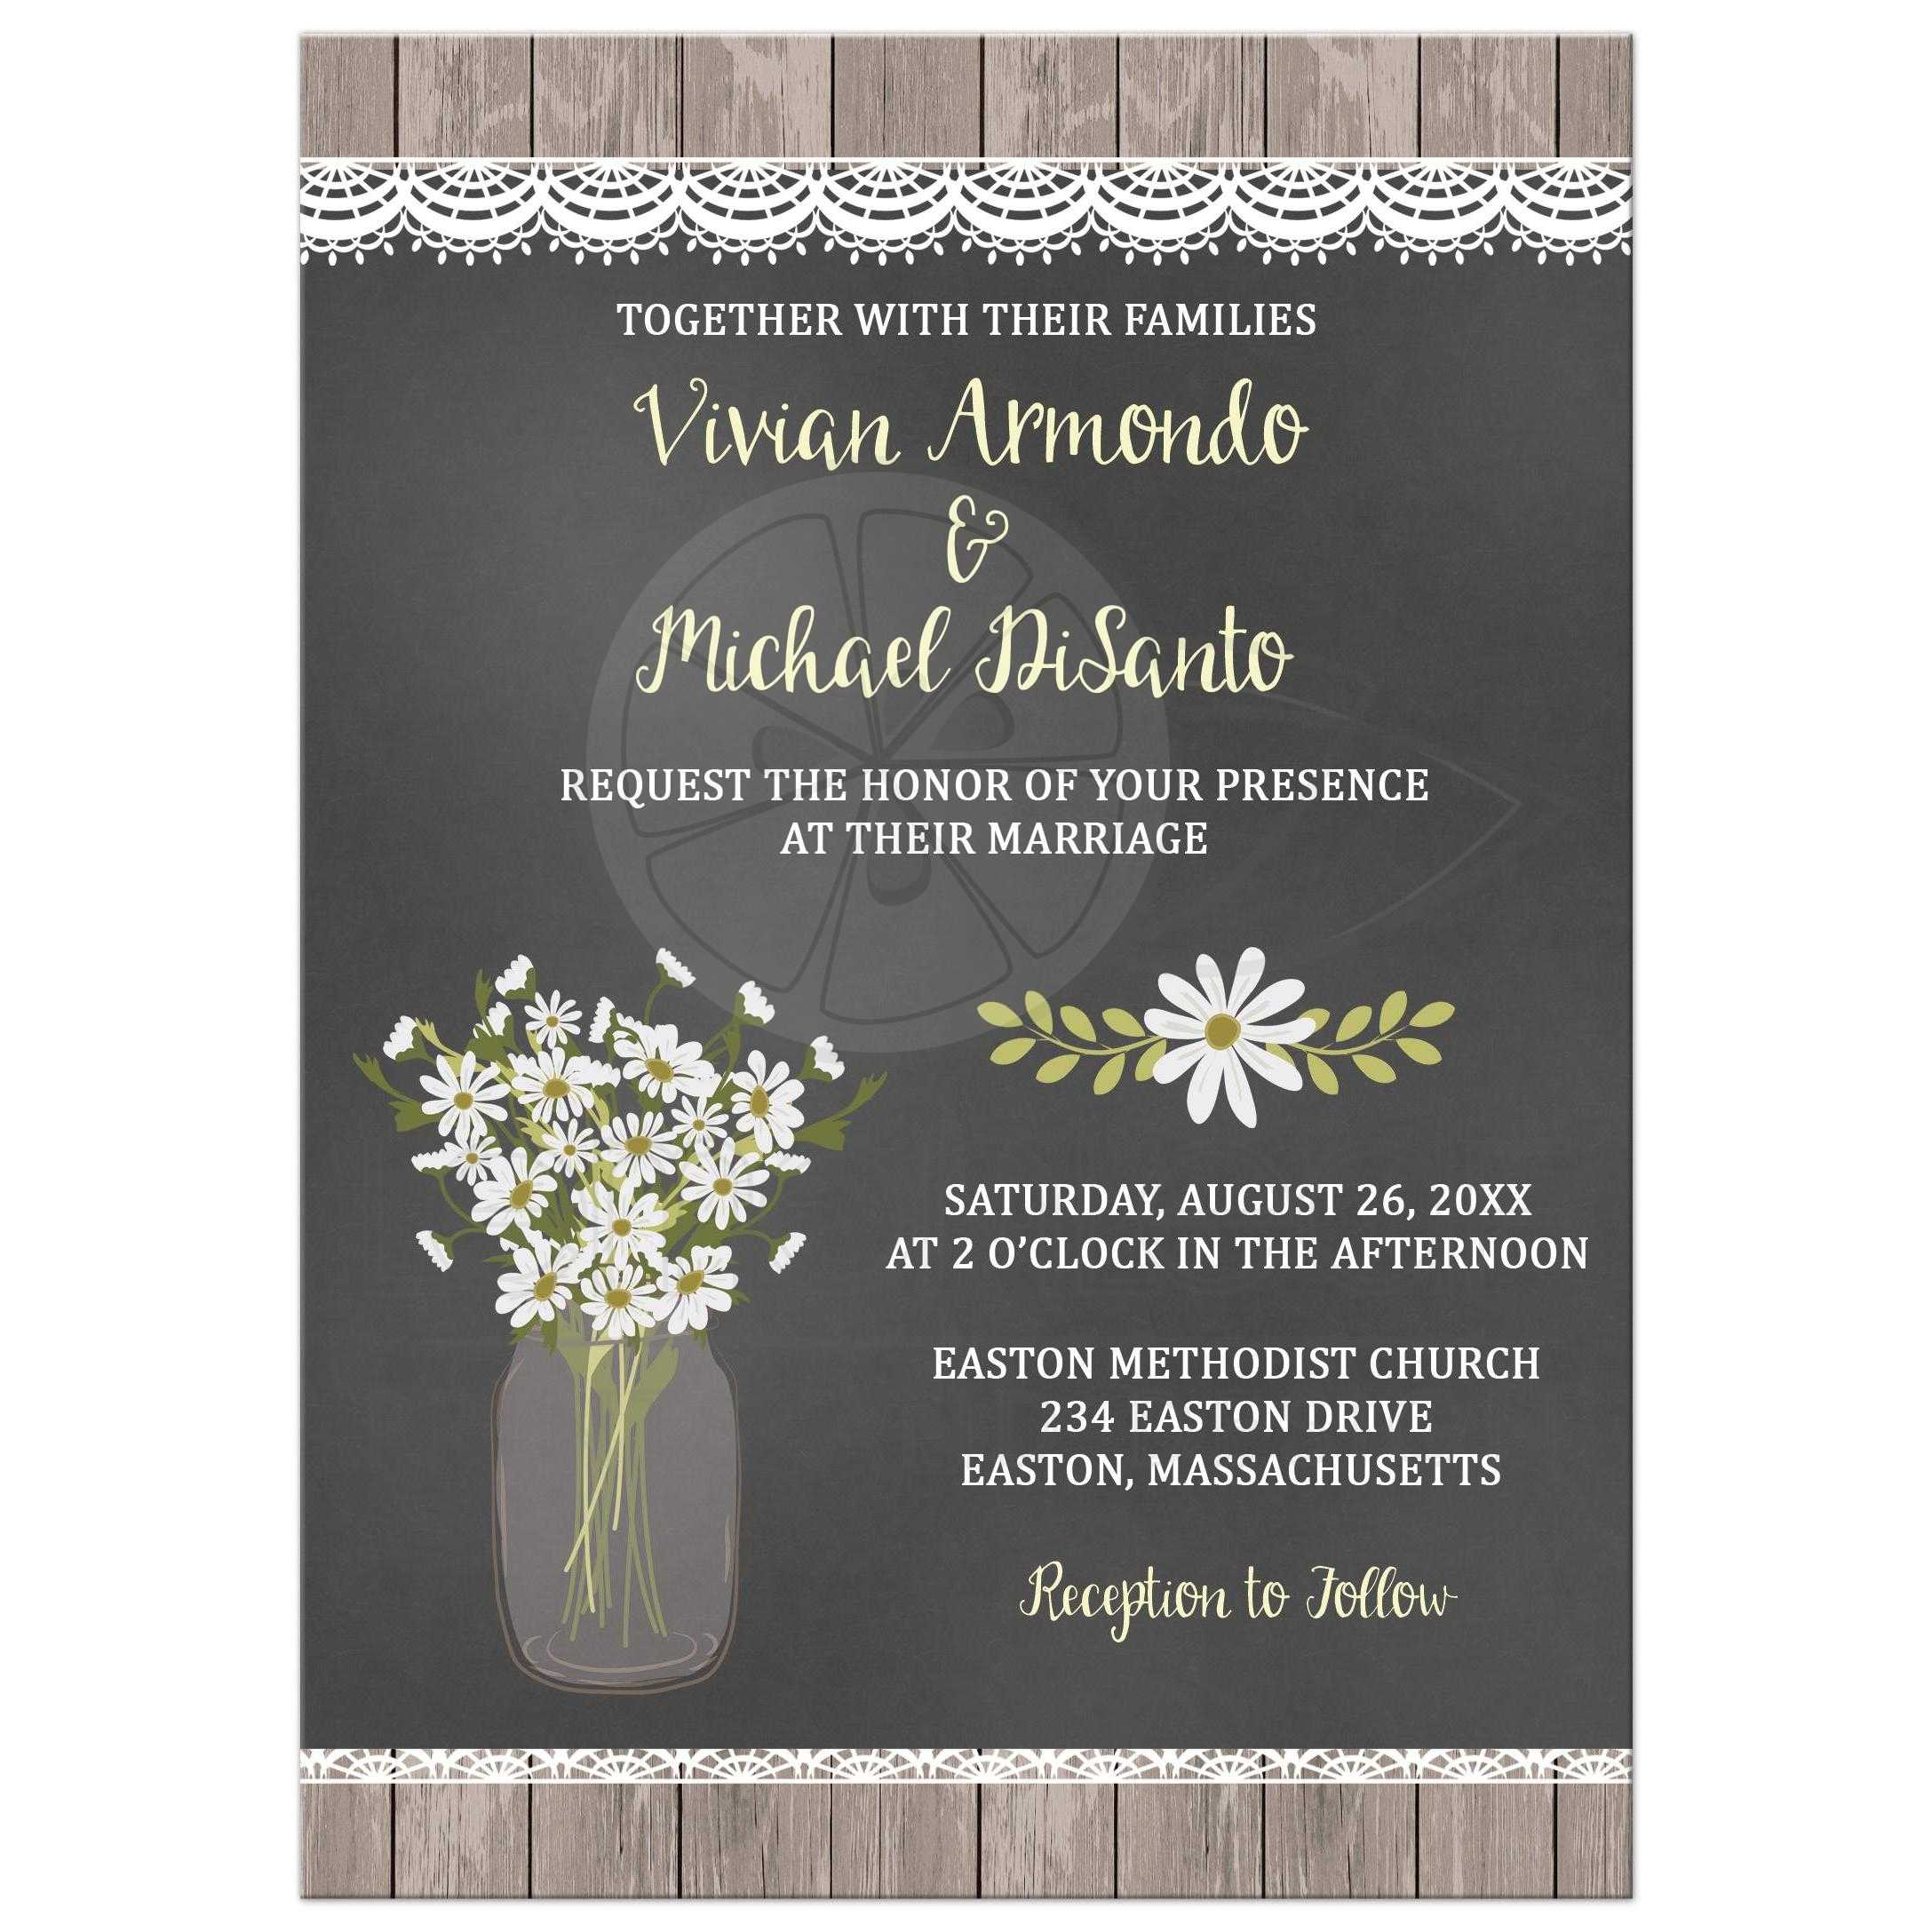 Rustic Daisy Wedding Invitations: Rustic Daisy In Mason Jar Chalkboard Wedding Invitation